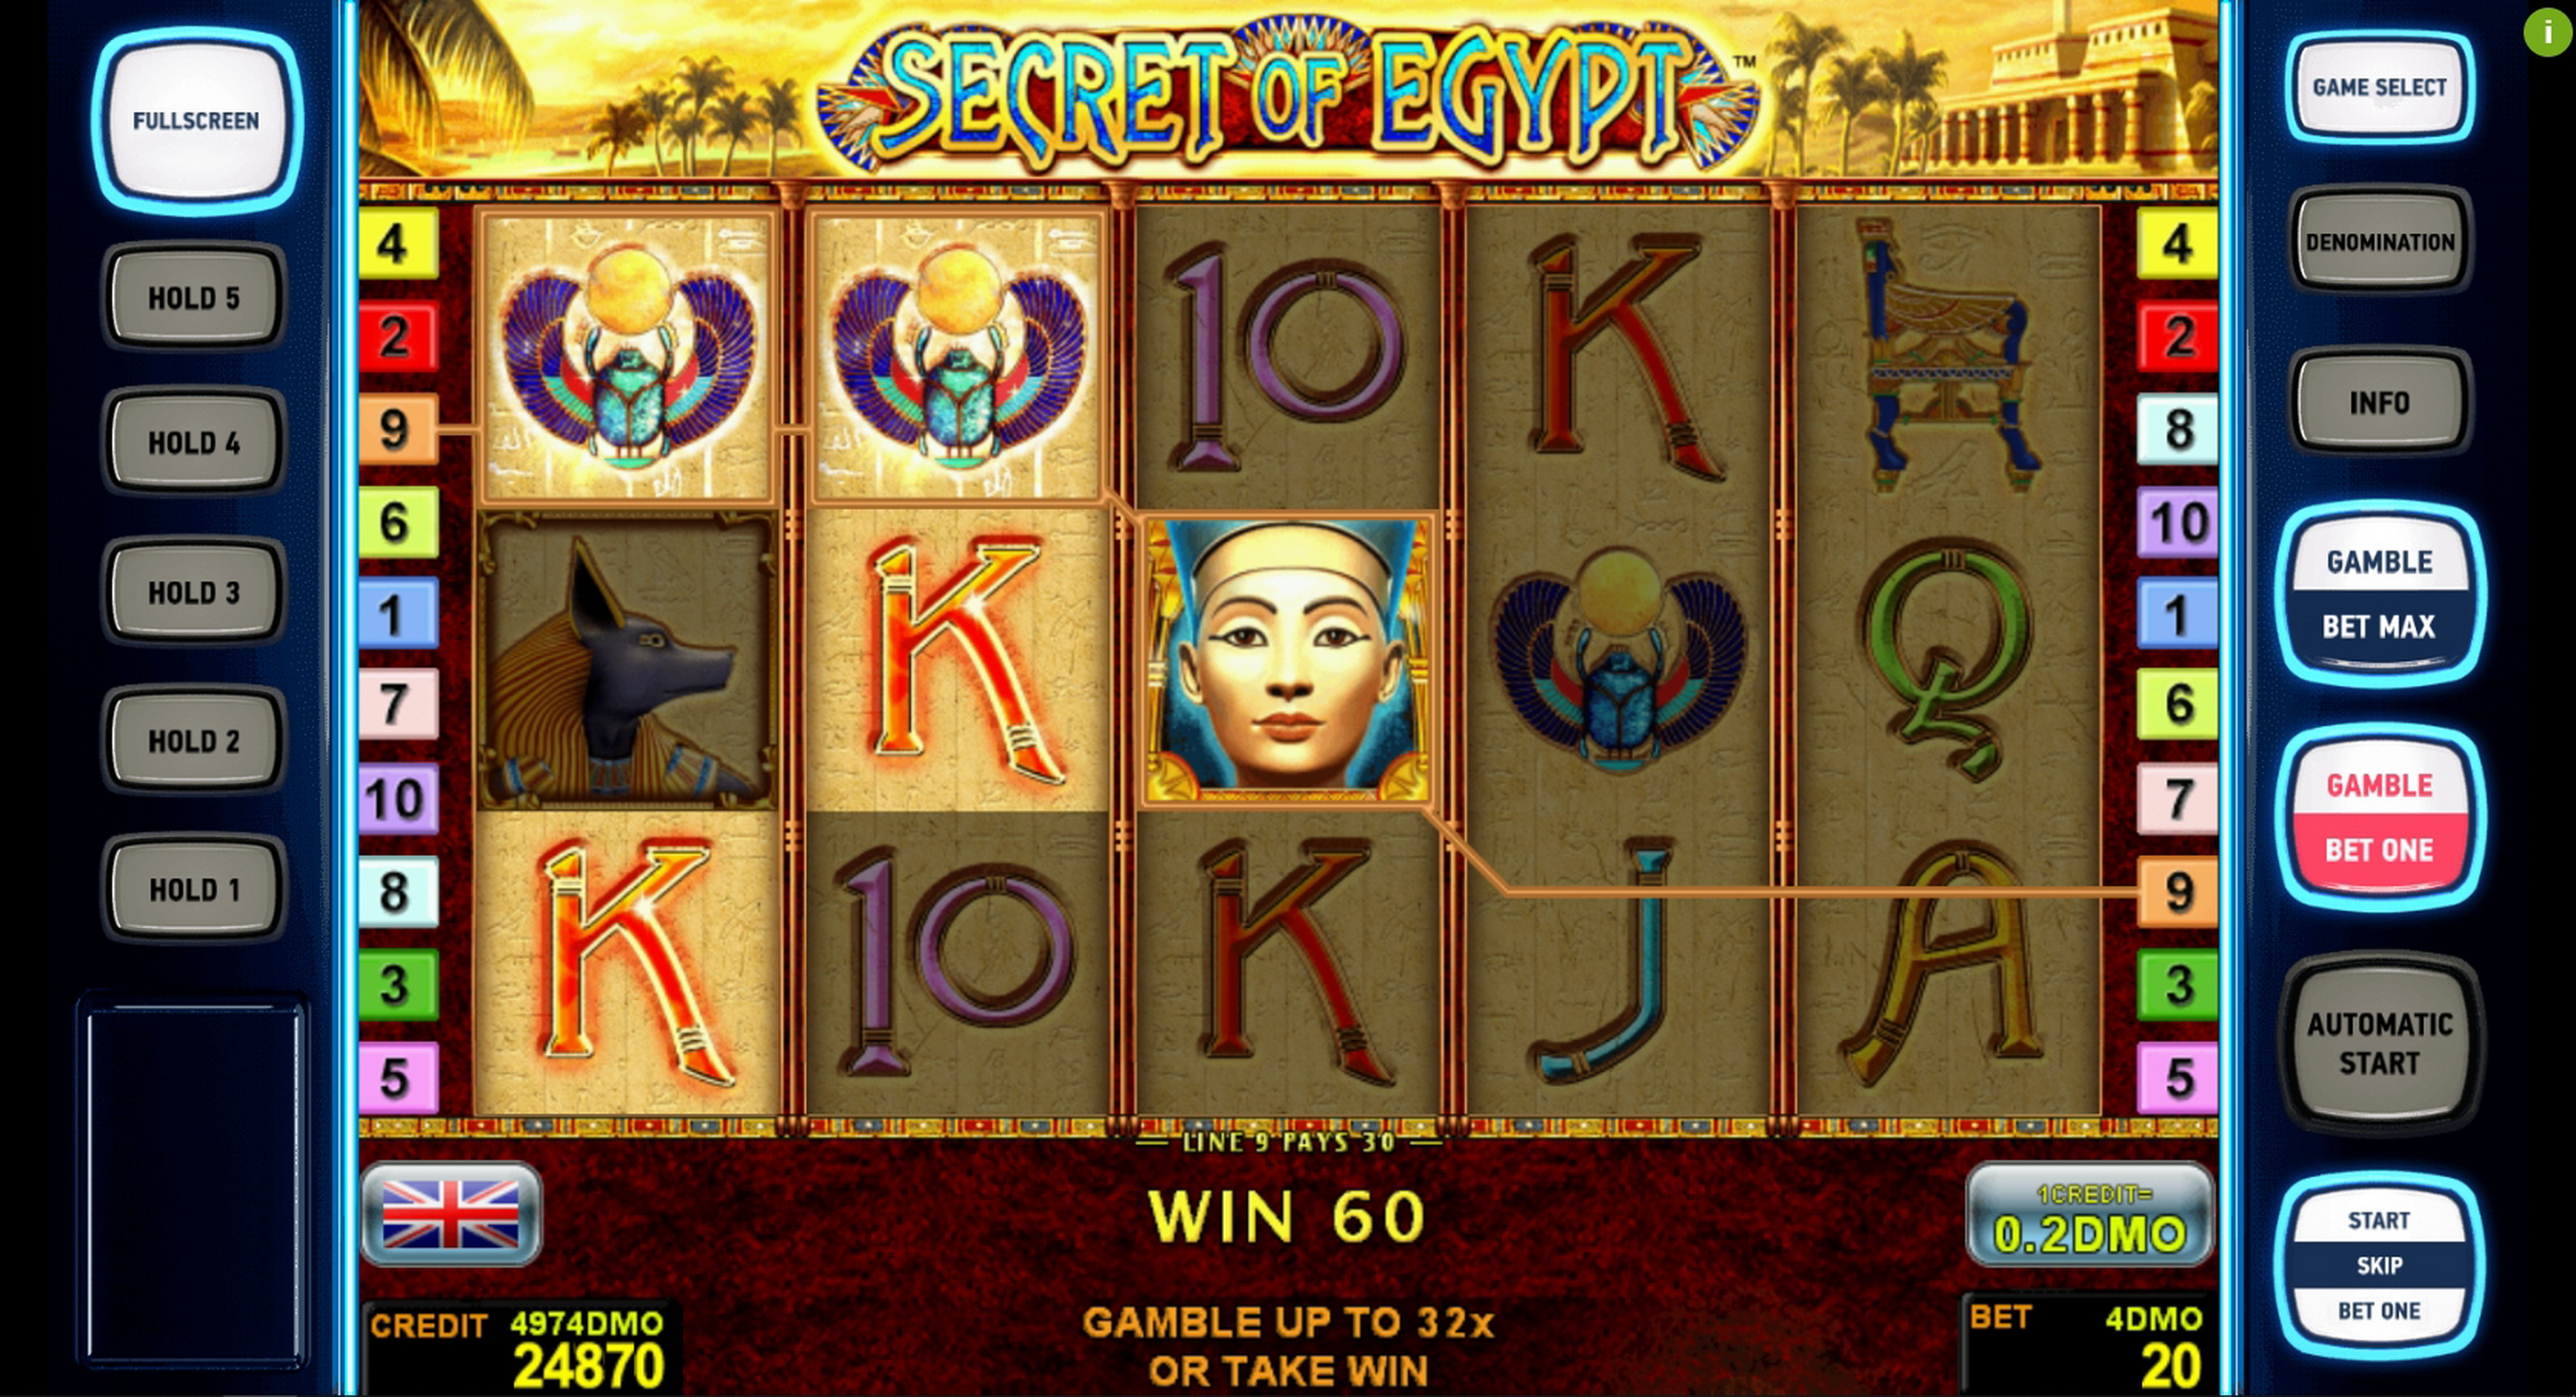 Win Money in Secret Of Egypt Deluxe Free Slot Game by Novomatic